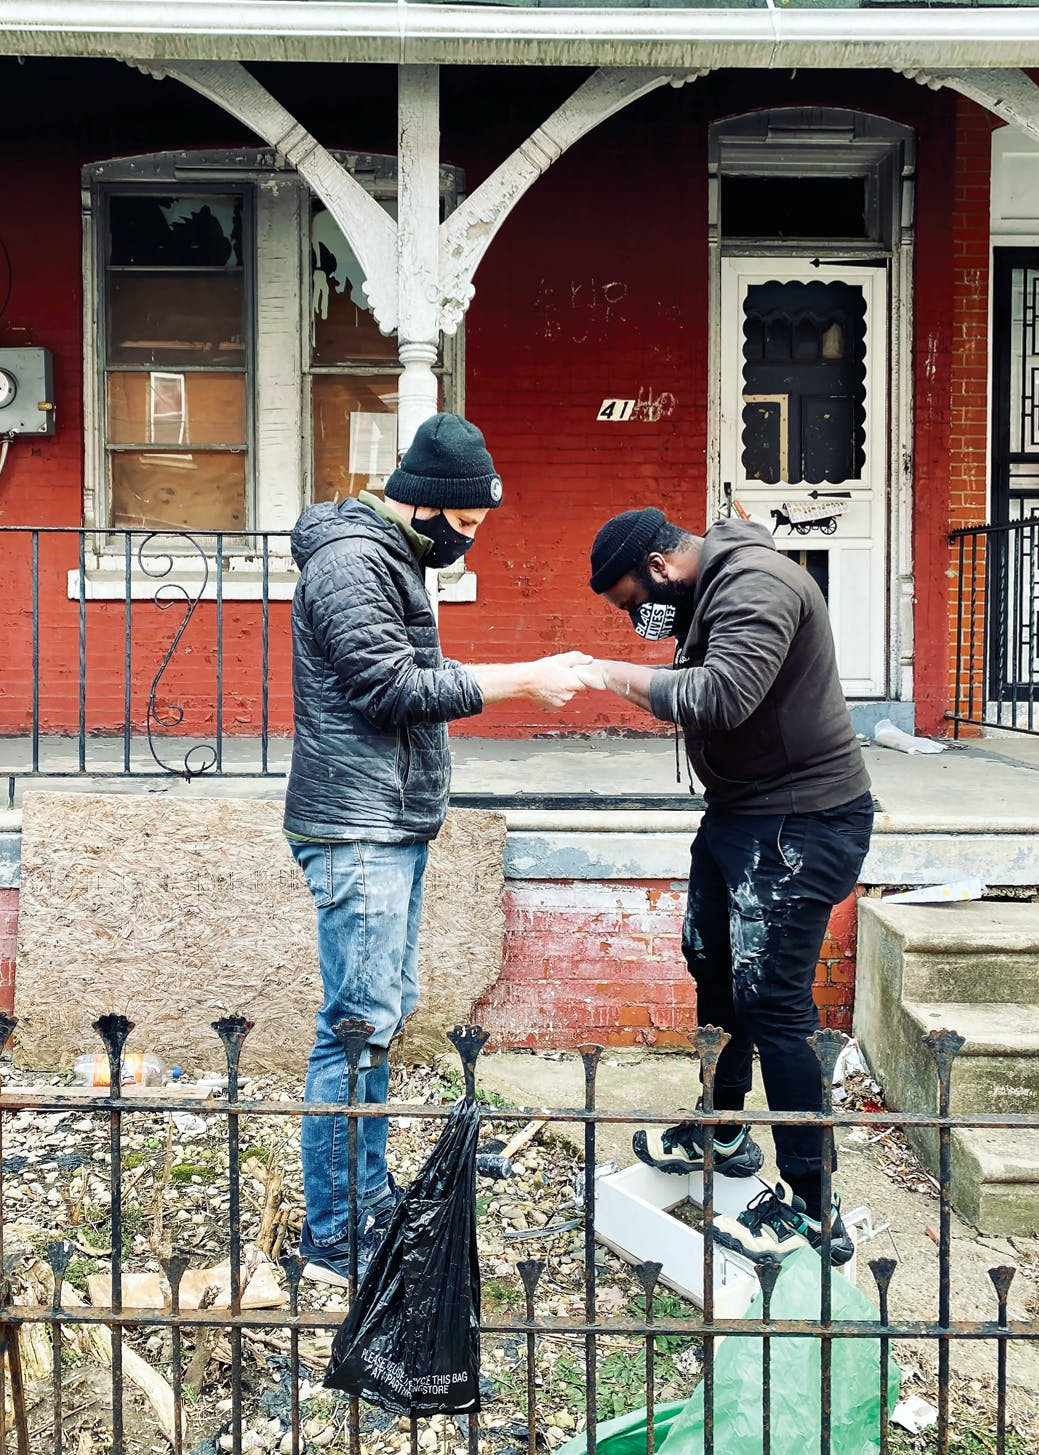 two people in face masks and jackets working together on a project in a yard outside a brick building